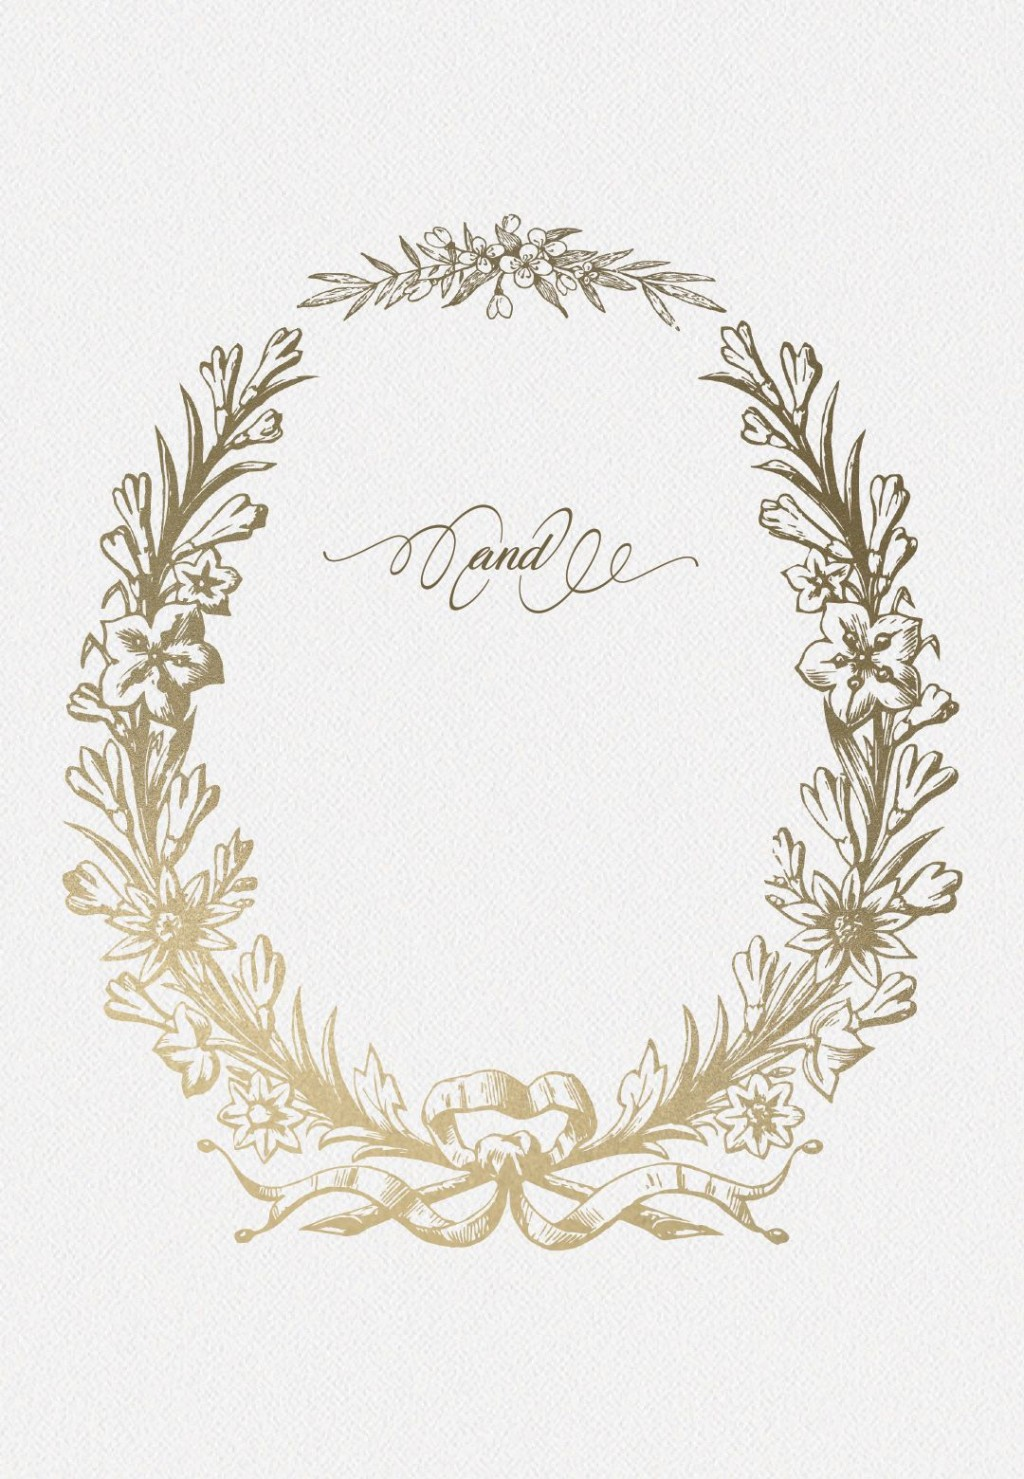 005 Awesome Blank Wedding Invitation Template High Resolution  Templates Free Download Printable Royal BlueLarge